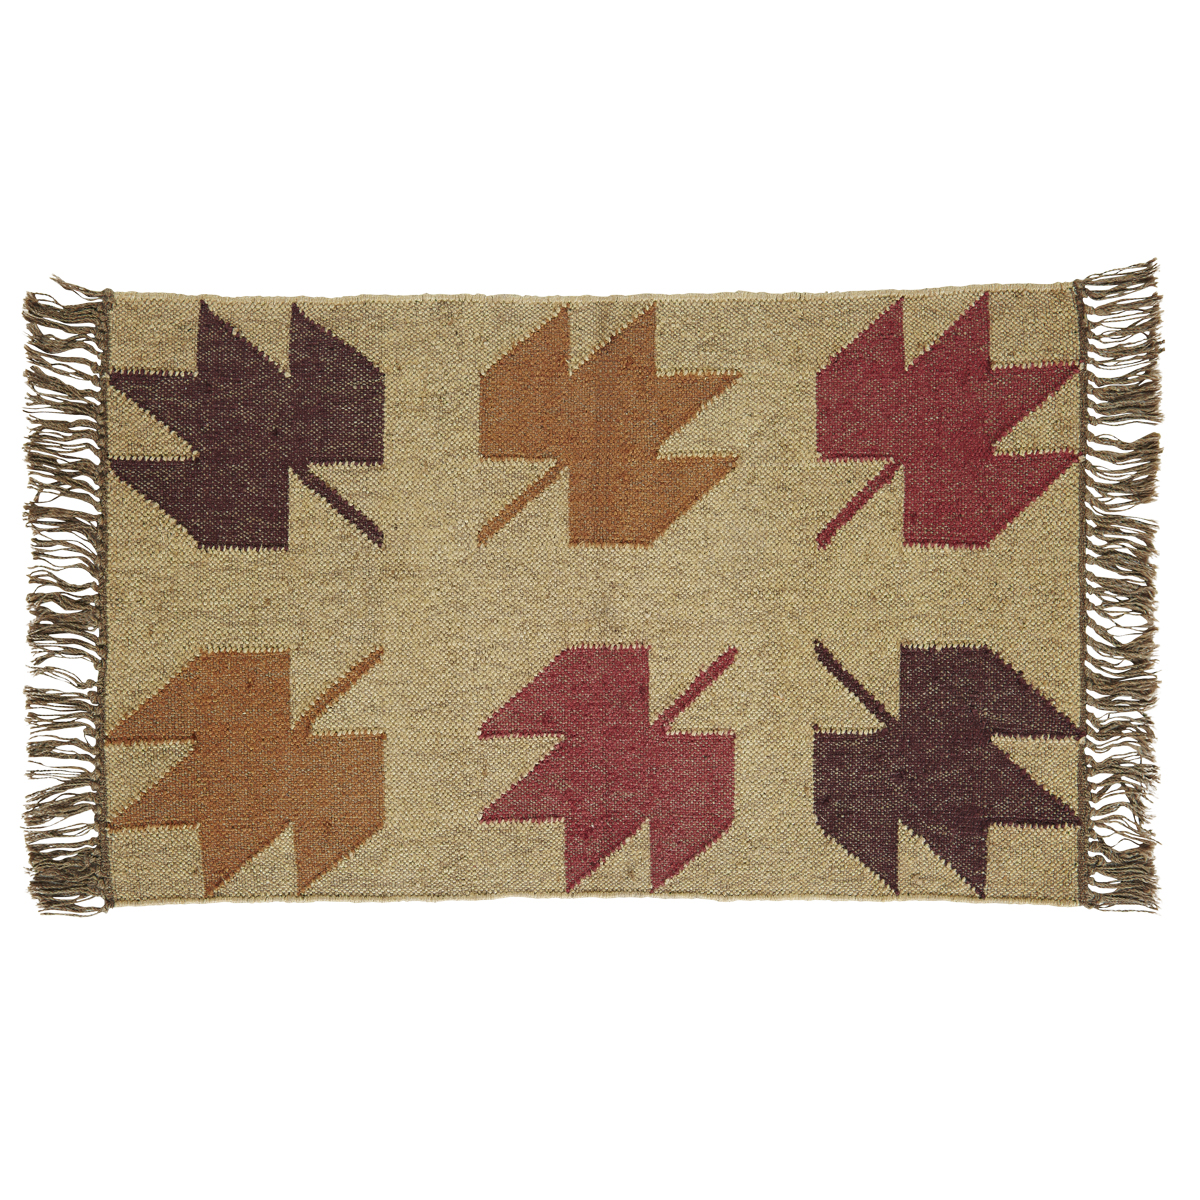 BRADDOCK Kilim Rug - 24x36 - Beige/Rust/Sable - Country Fall Leaves - VHC Brands